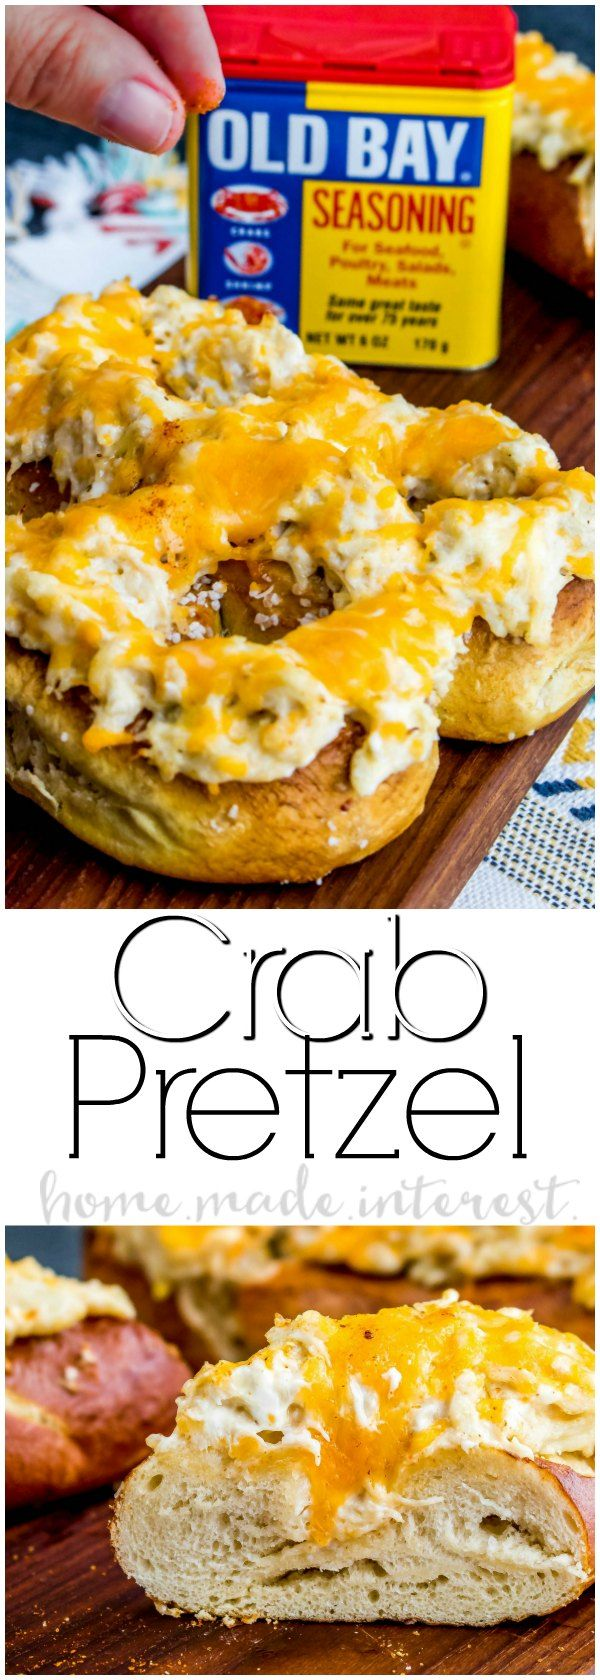 Crab Pretzel   A warm soft pretzel and an amazing crab dip recipe make this Crab Pretzel the ultimate party appetizer. This crab pretzel is covered in creamy crab dip and topped with melted cheese. It makes a great football party appetizer or football party food. Make this easy crab dip for your family and watch it disappear!  #ad #IdOLDBAYThat #OLDBAYCrabPretzel